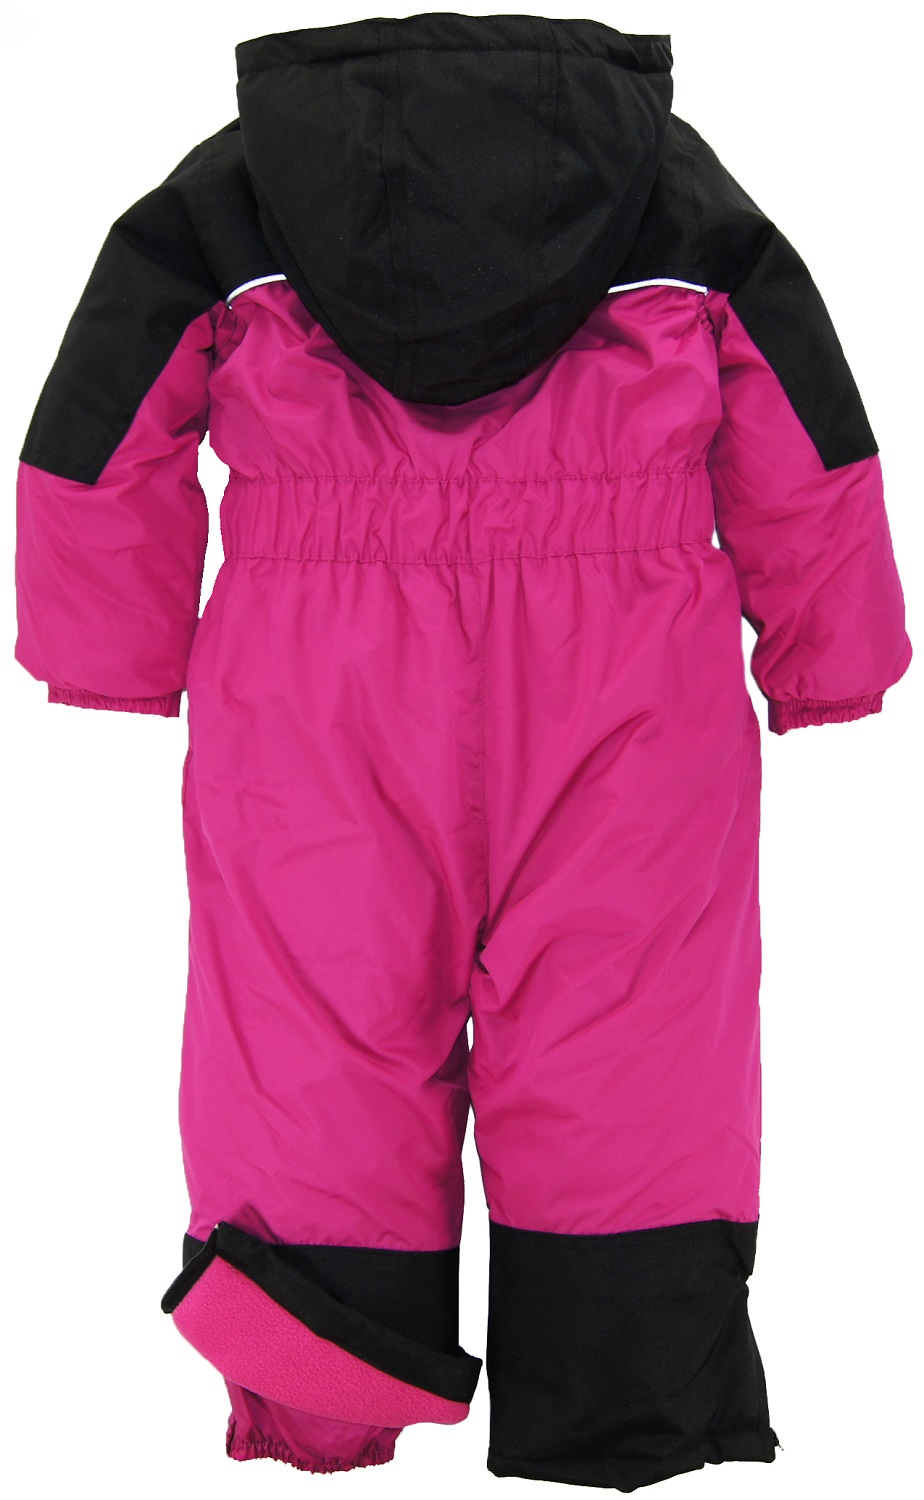 Little Boys One Piece Suits Boys Ski & Snowboard Once Piece Suits () Finding the perfect baby, toddler, or preschool boys' one piece ski, snowboard or snow suit is easy at humorrmundiall.ga Keep your toddler warm while playing out in the snow or while flying down the slopes.